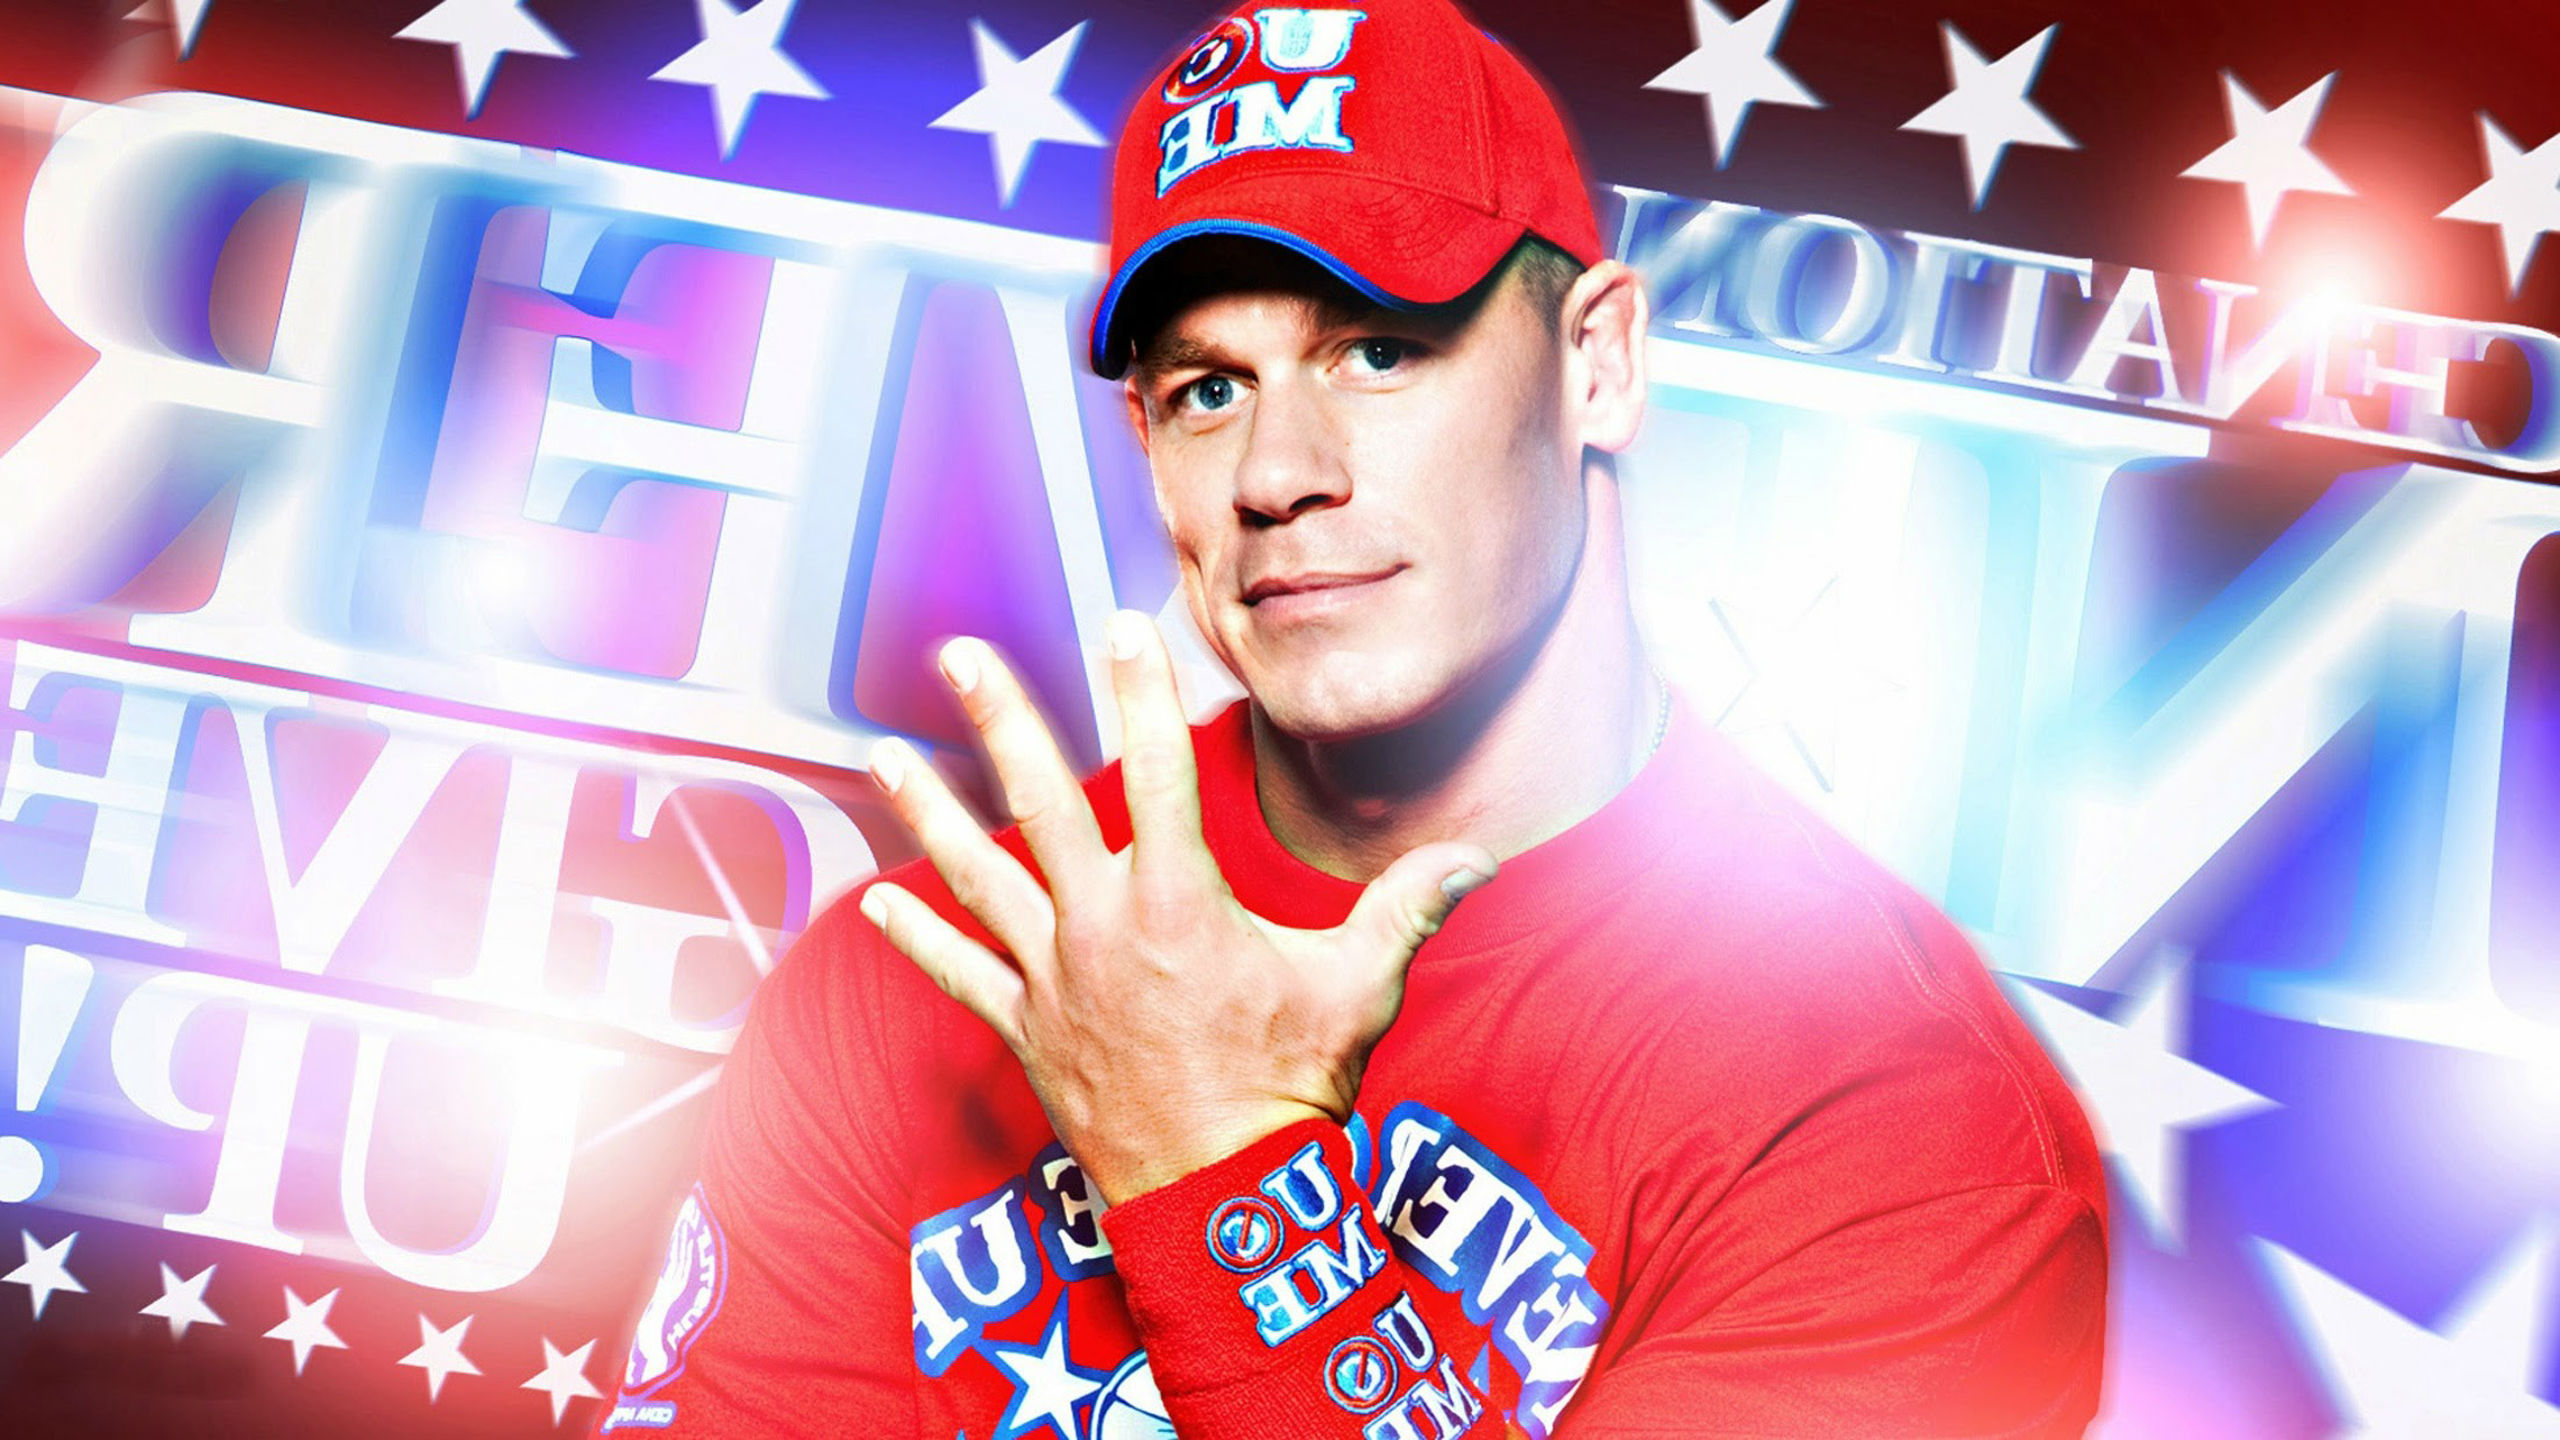 HD-John-Cena-wallpaper-wp3406689